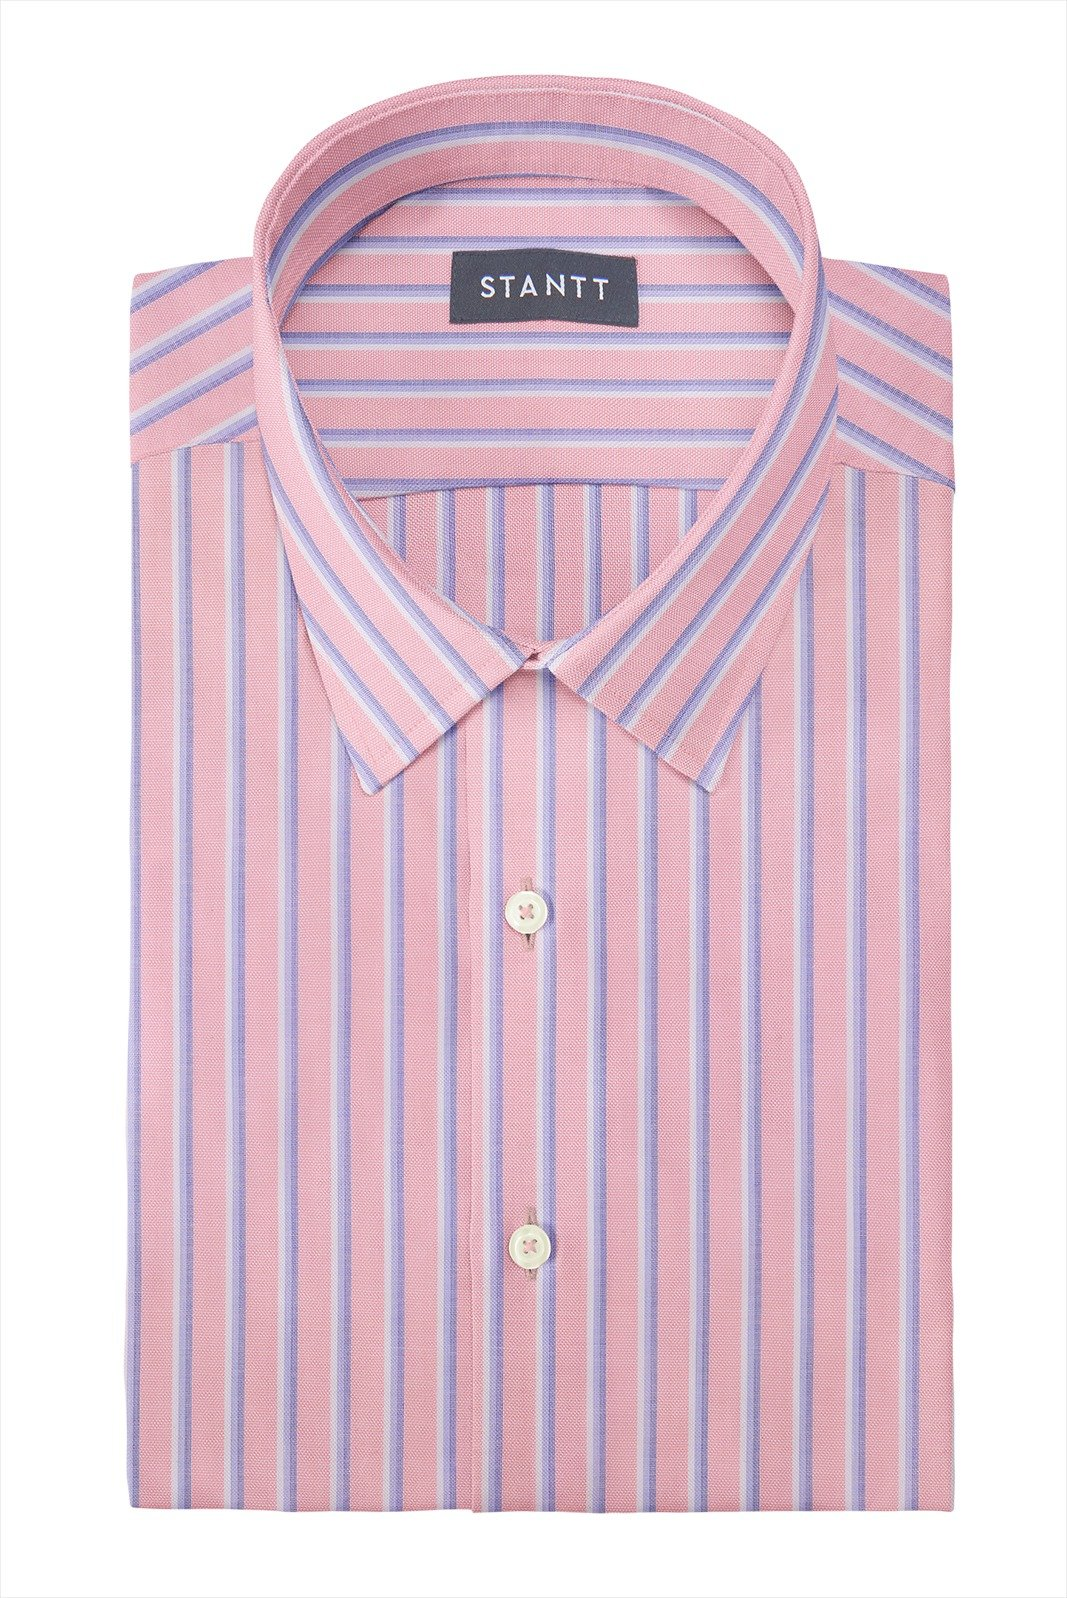 Bold Pink Oxford Stripe: Semi-Spread Collar, Barrel Cuff